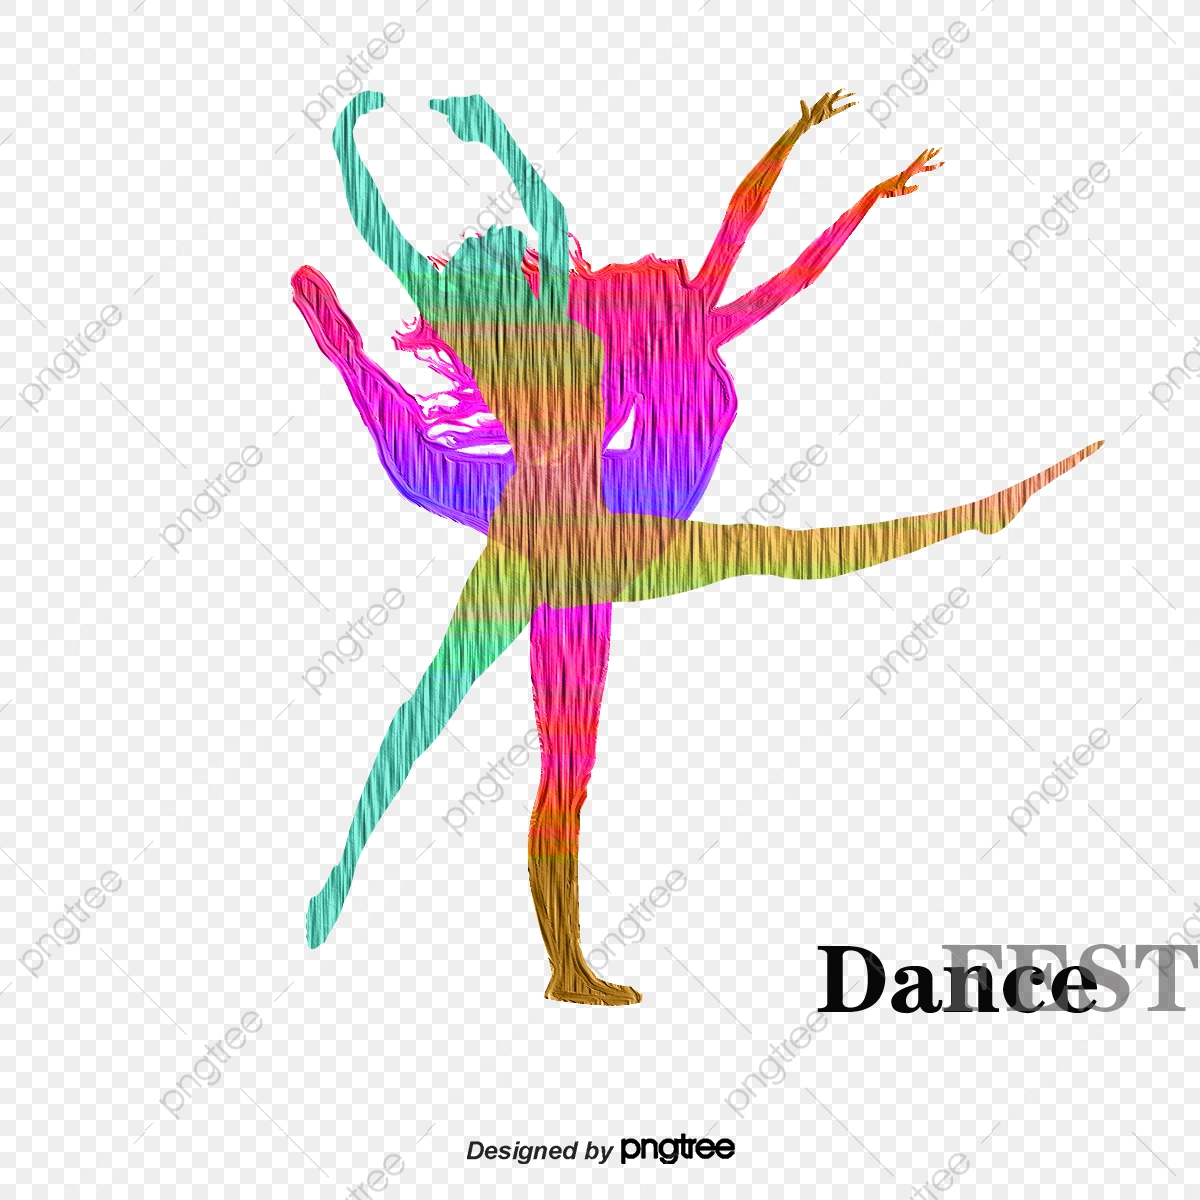 Dancing Cartoon Characters Vector, Cartoon Characters, Character